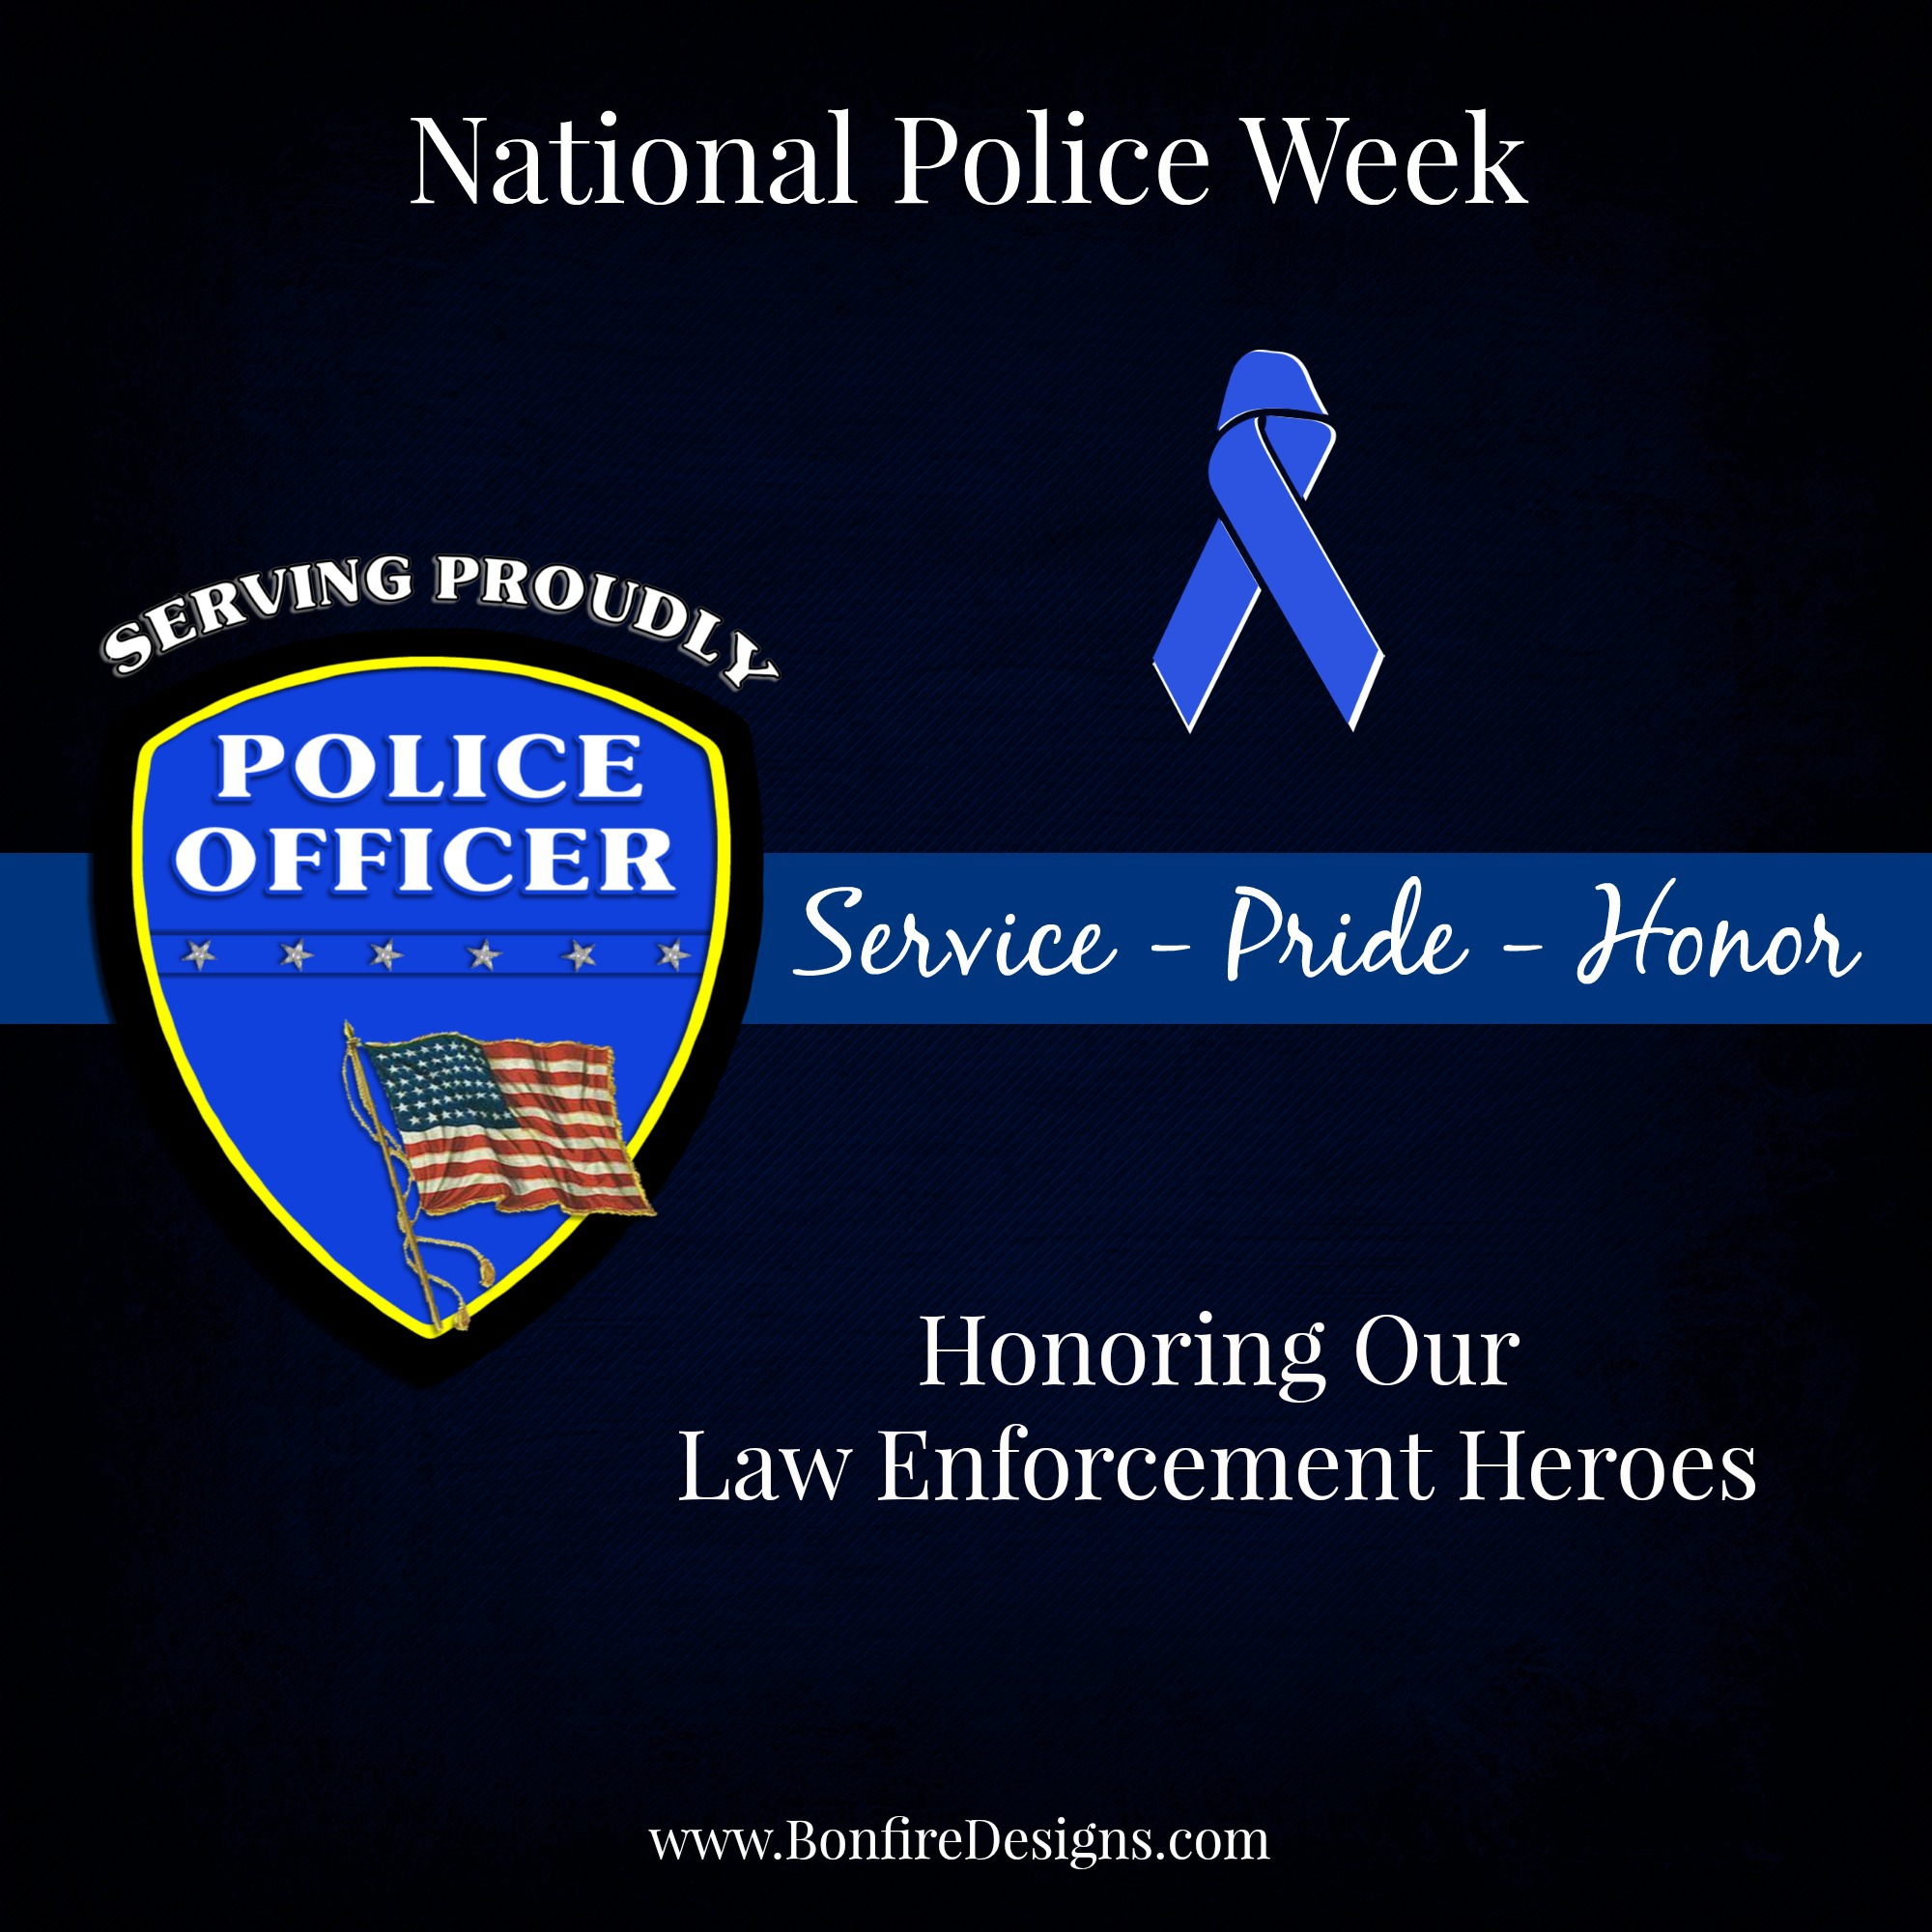 National Police Week Honoring Our Heroes